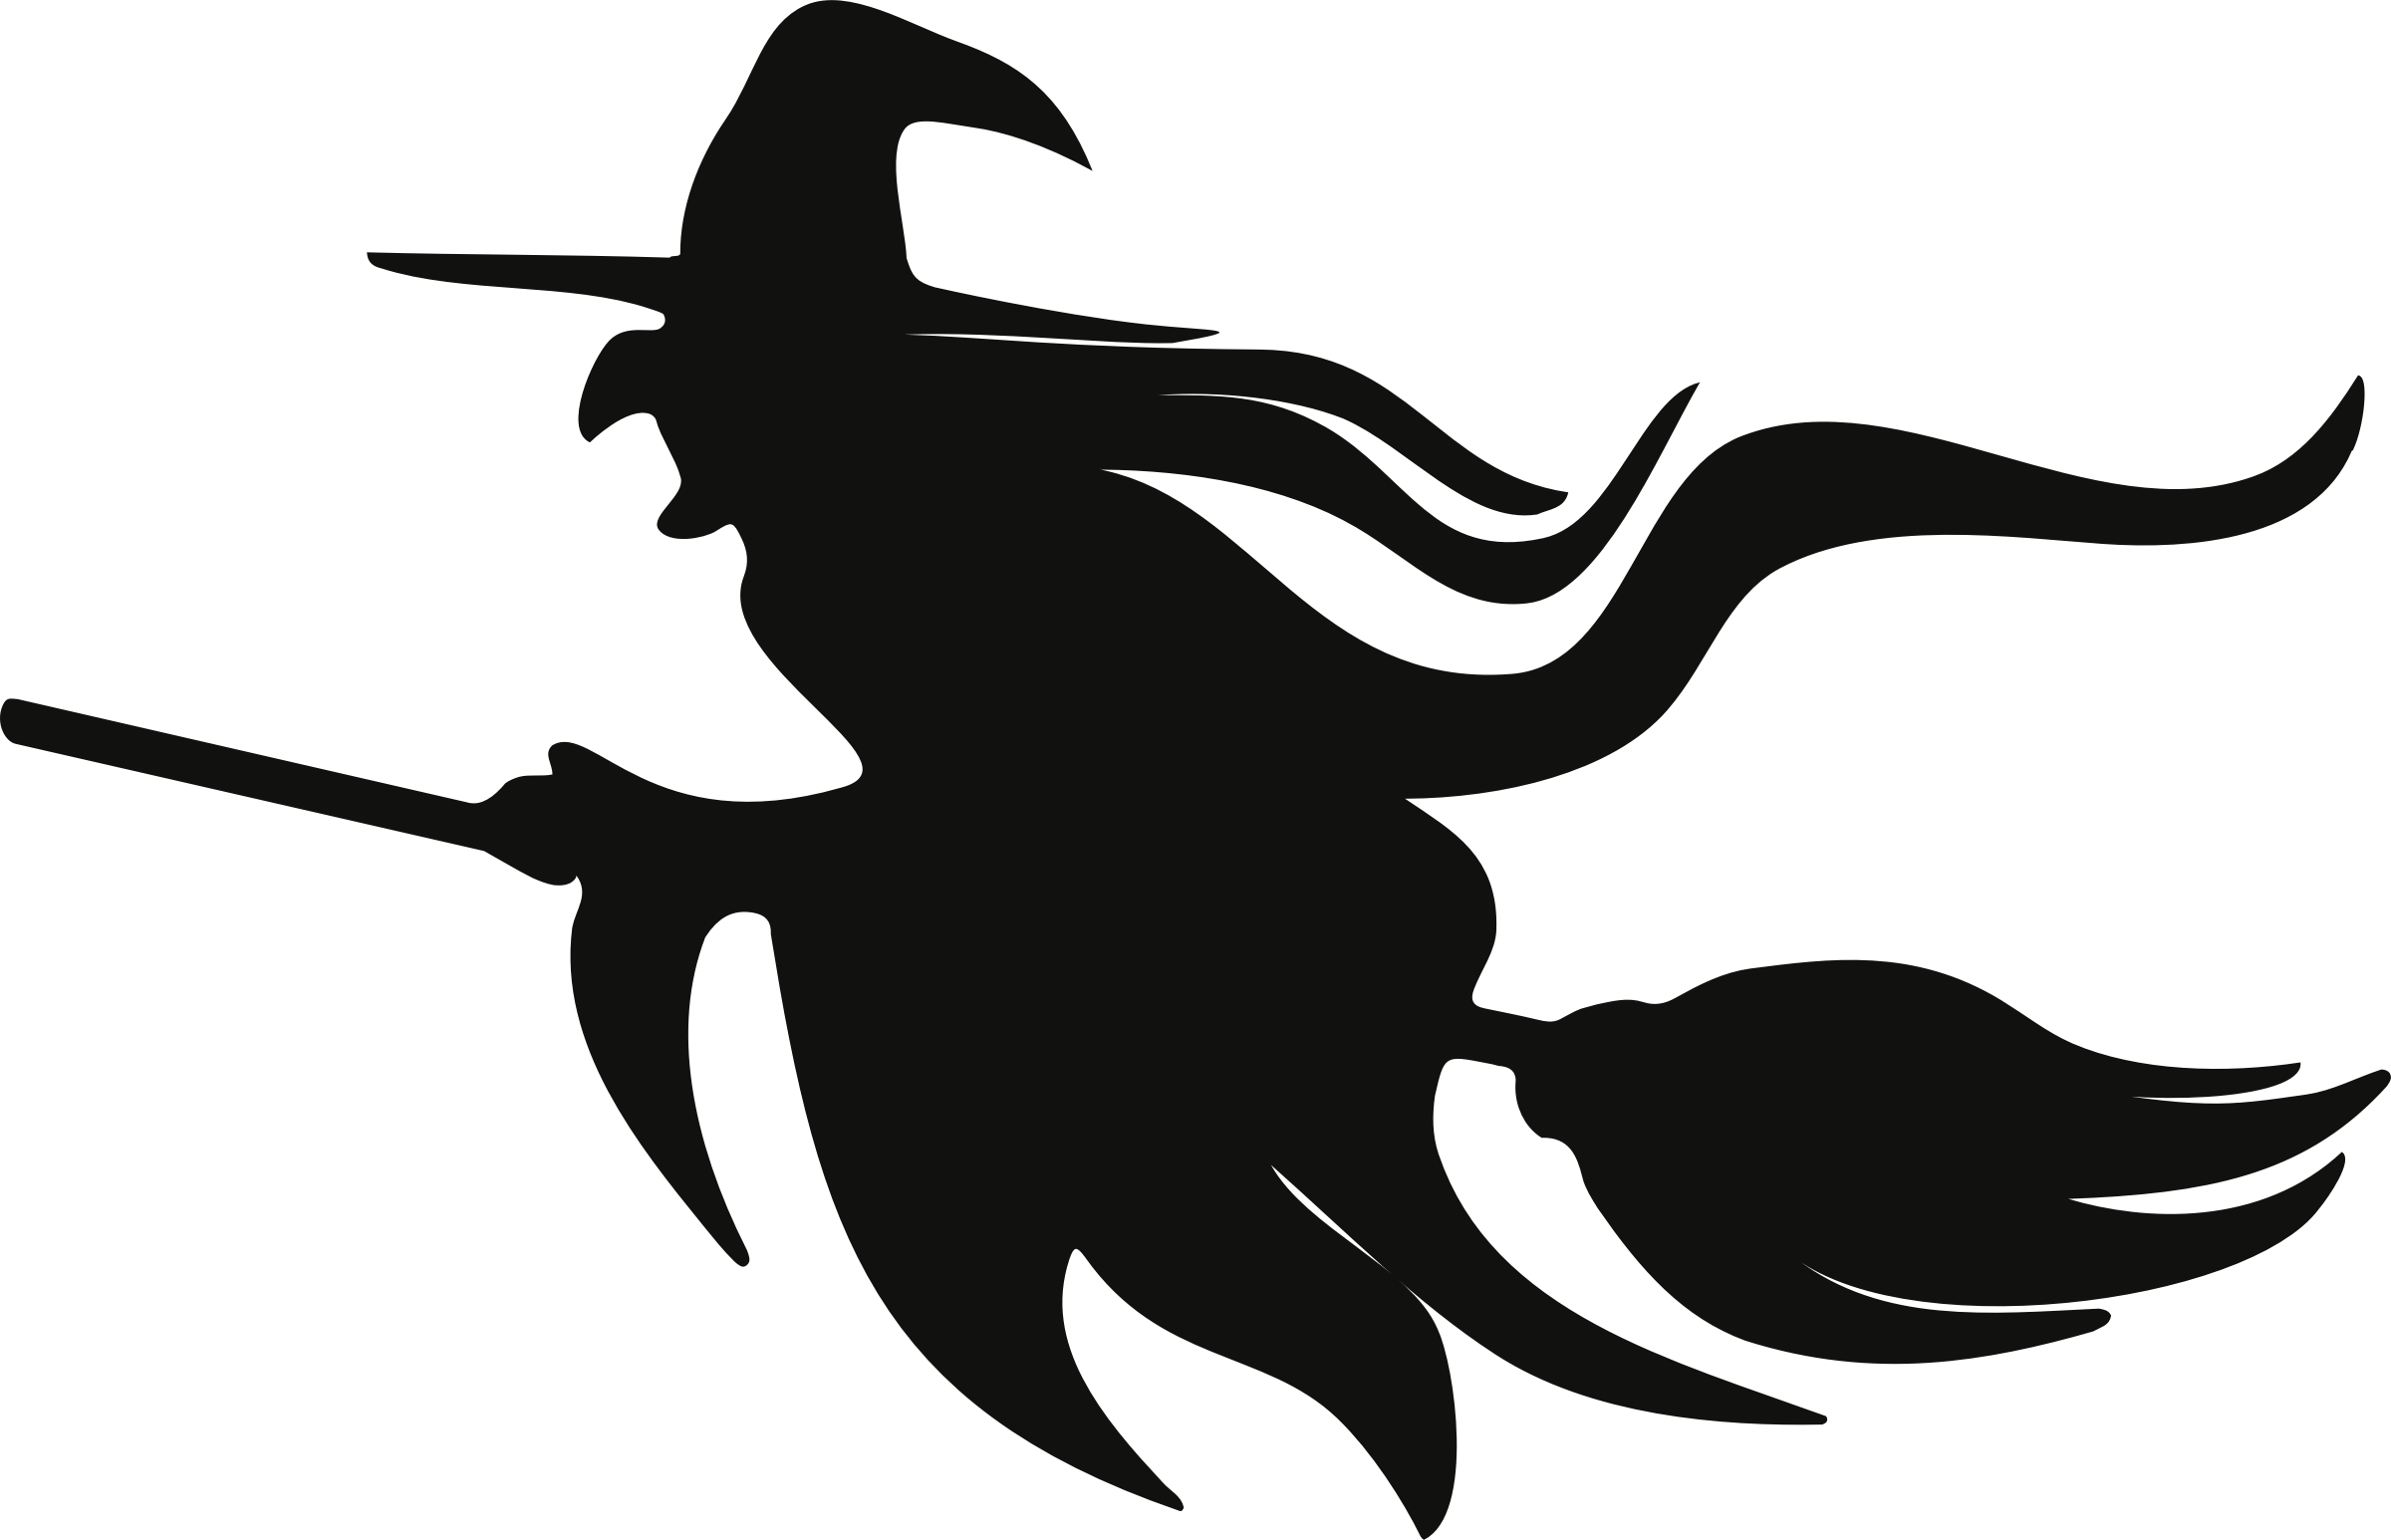 Witch silhouette images clipart png stock Broom Witchcraft Silhouette Clip art - bat png download ... png stock